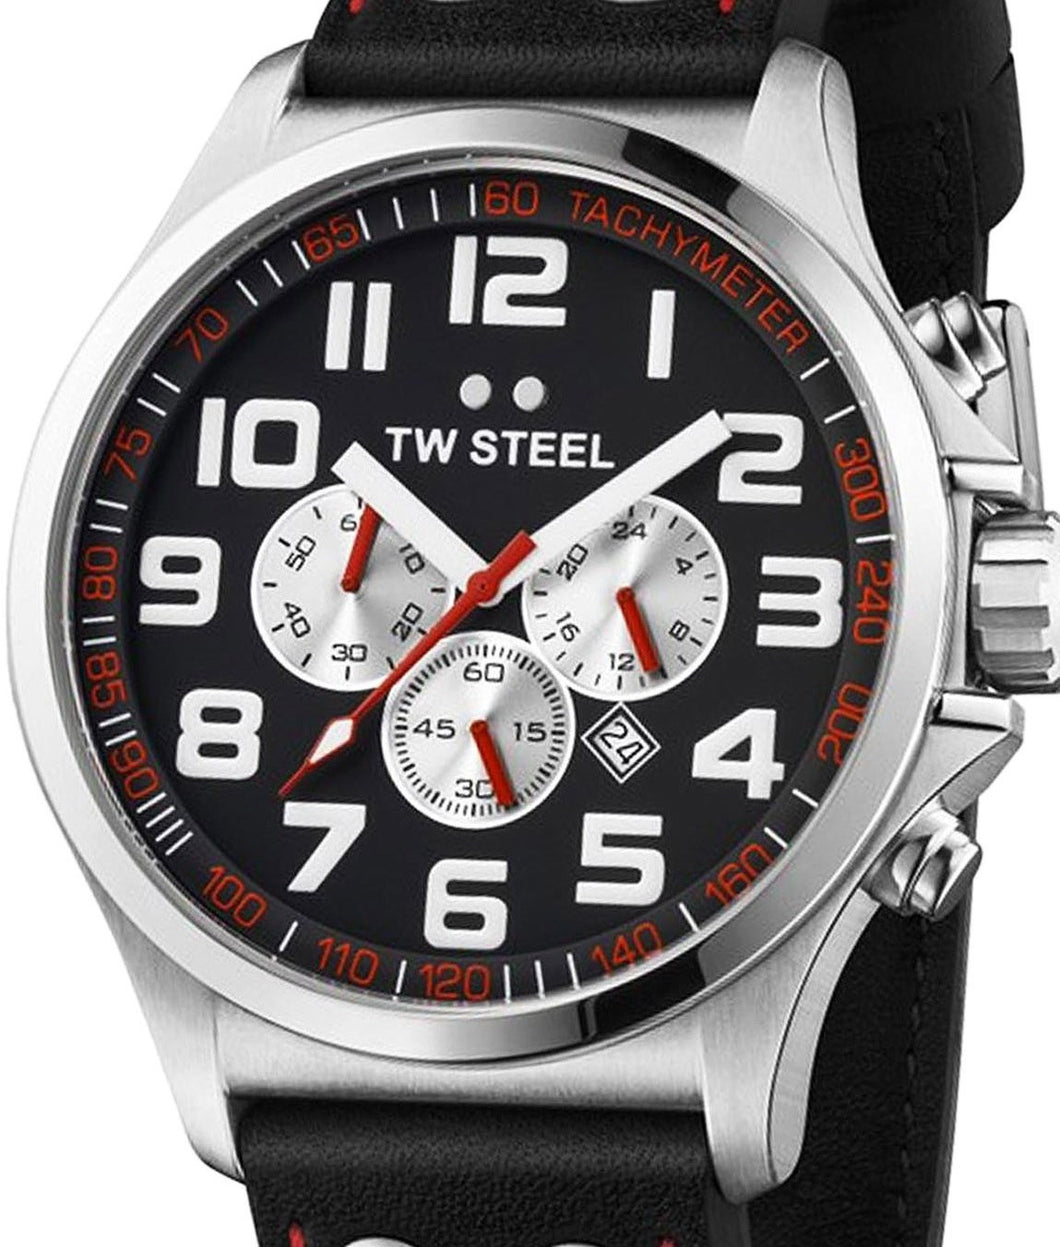 Authentic TW STEEL Pilot Collection Chronograph Mens Watch